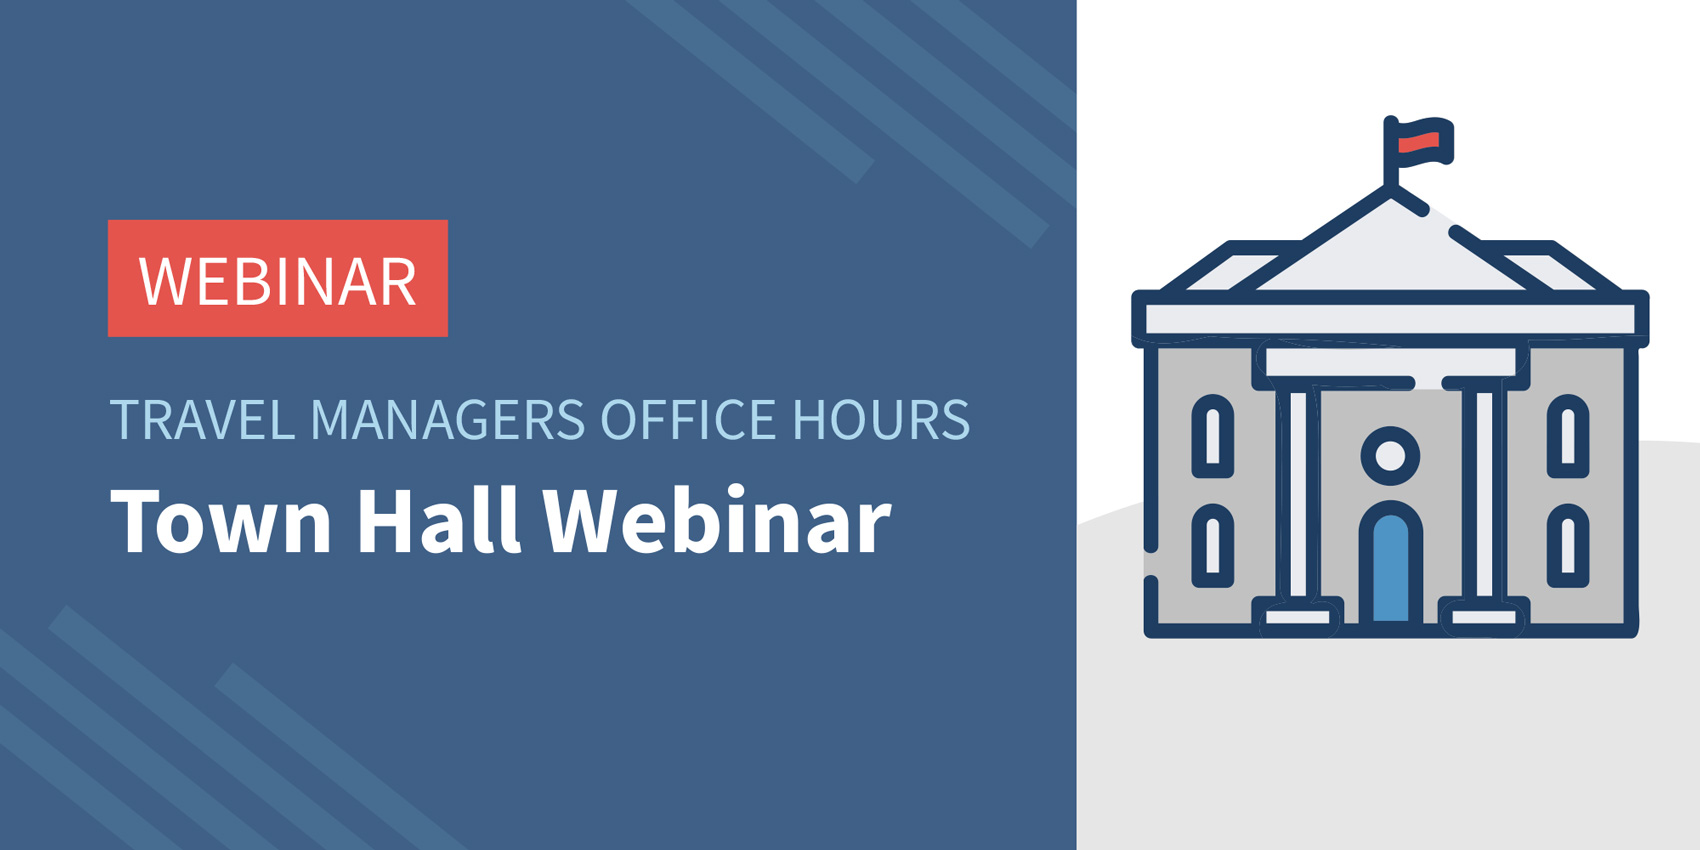 Traxo Town Hall Webinar Title and Building Illustration